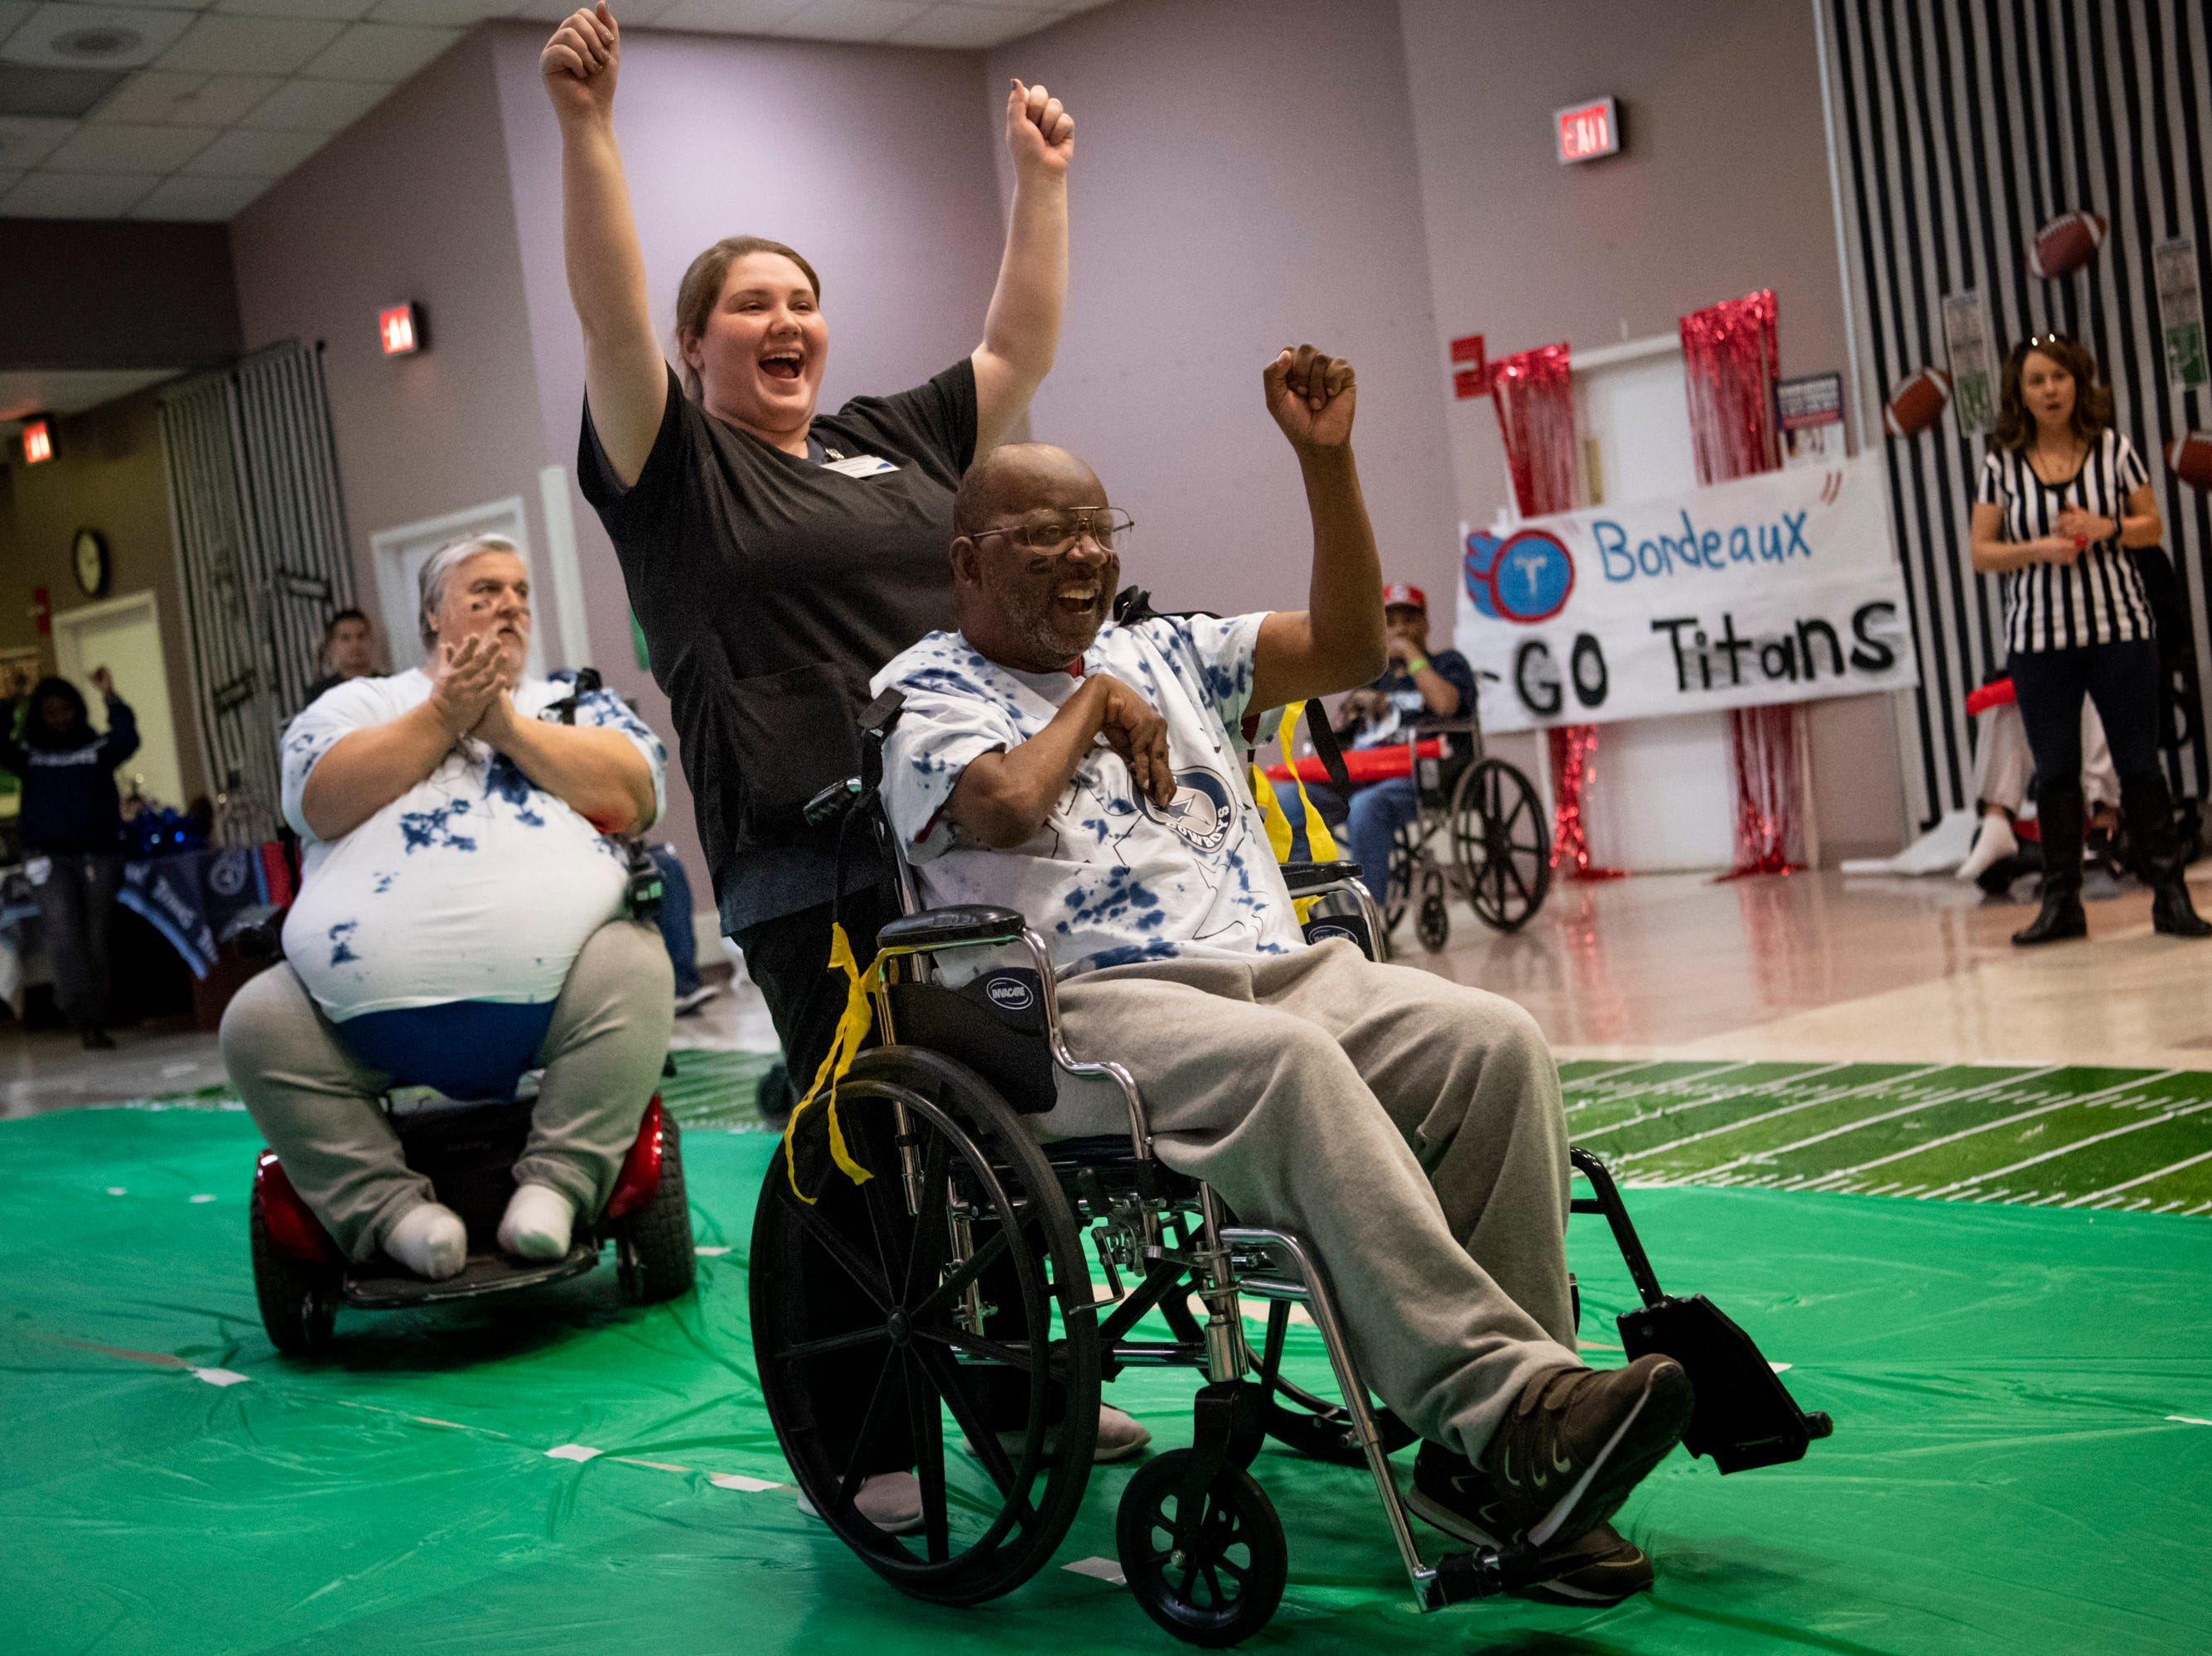 Robert McNeil celebrates scoring a field-goal during the Wheelchair Super Bowl at Nashville Community Care and Rehabilitation at Bordeaux in Nashville, Tenn., Friday, Feb. 1, 2019.